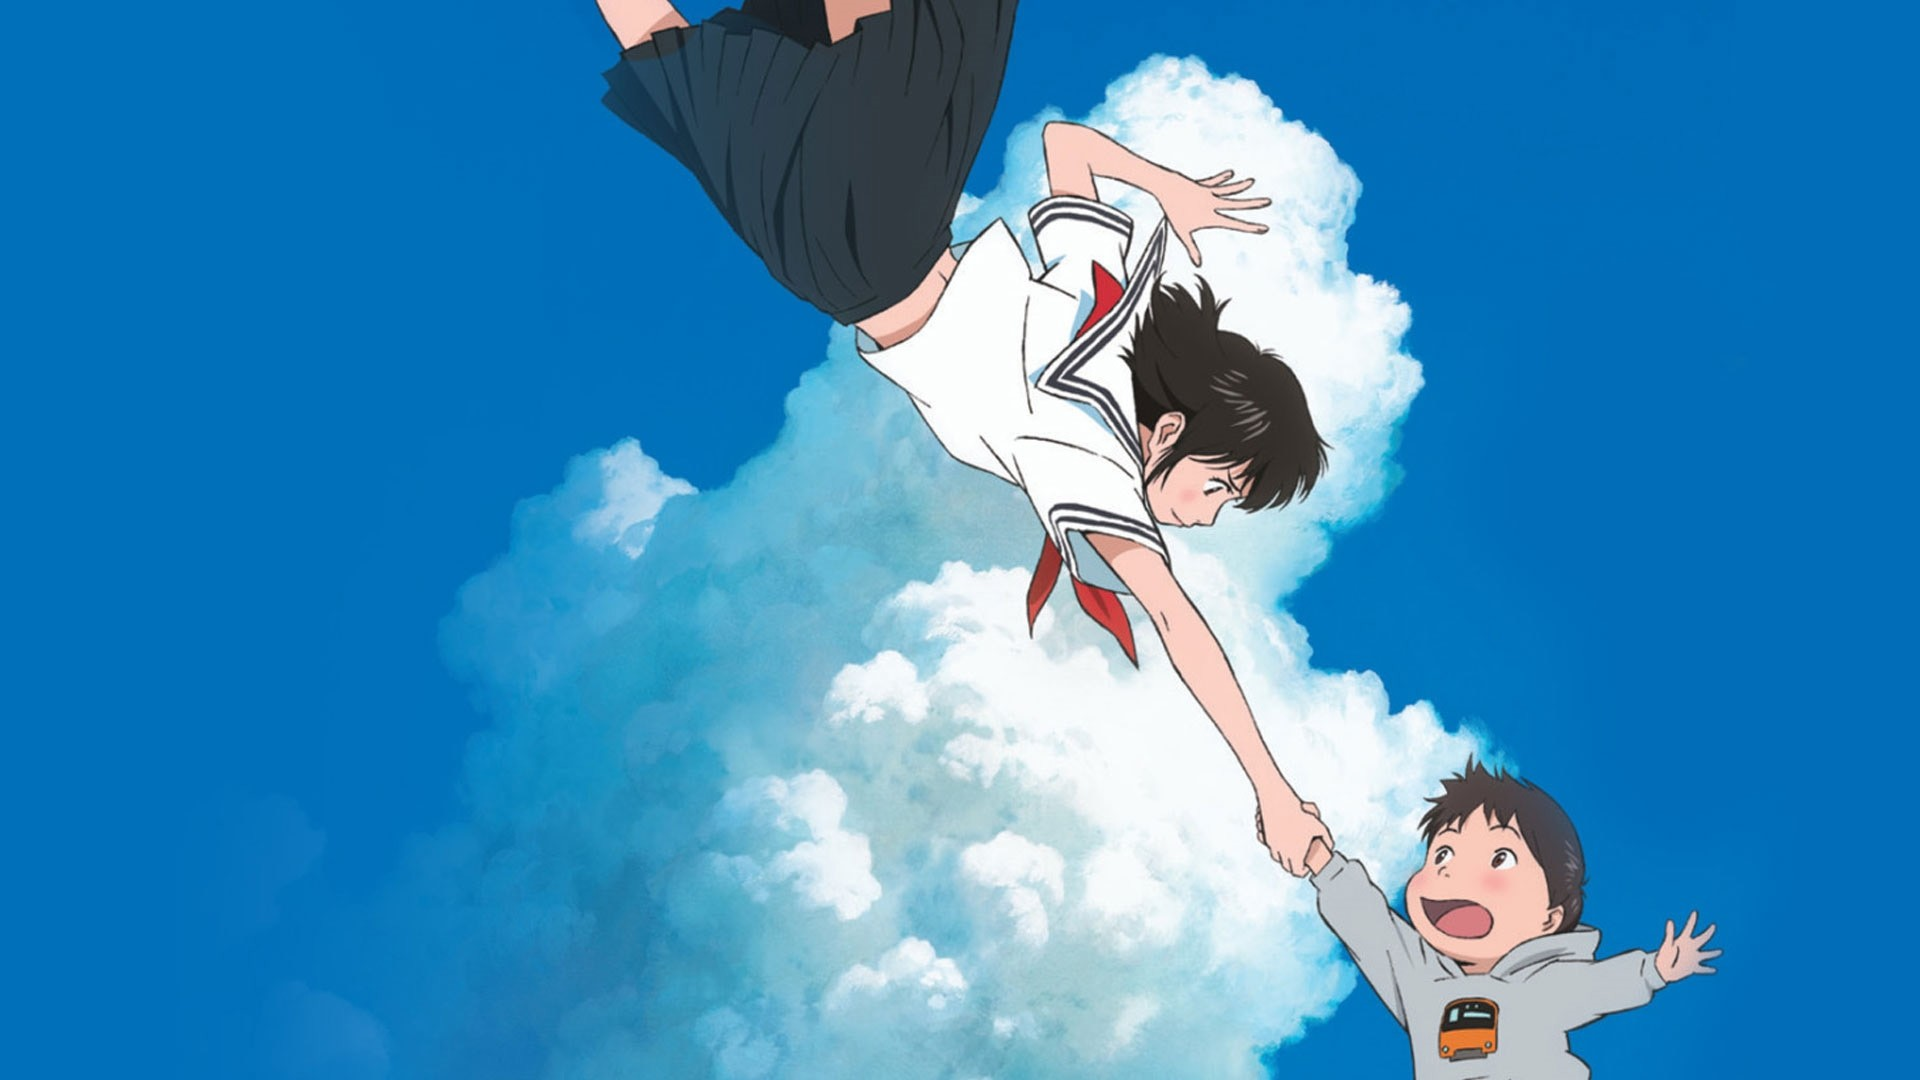 Mirai an anime between past and future